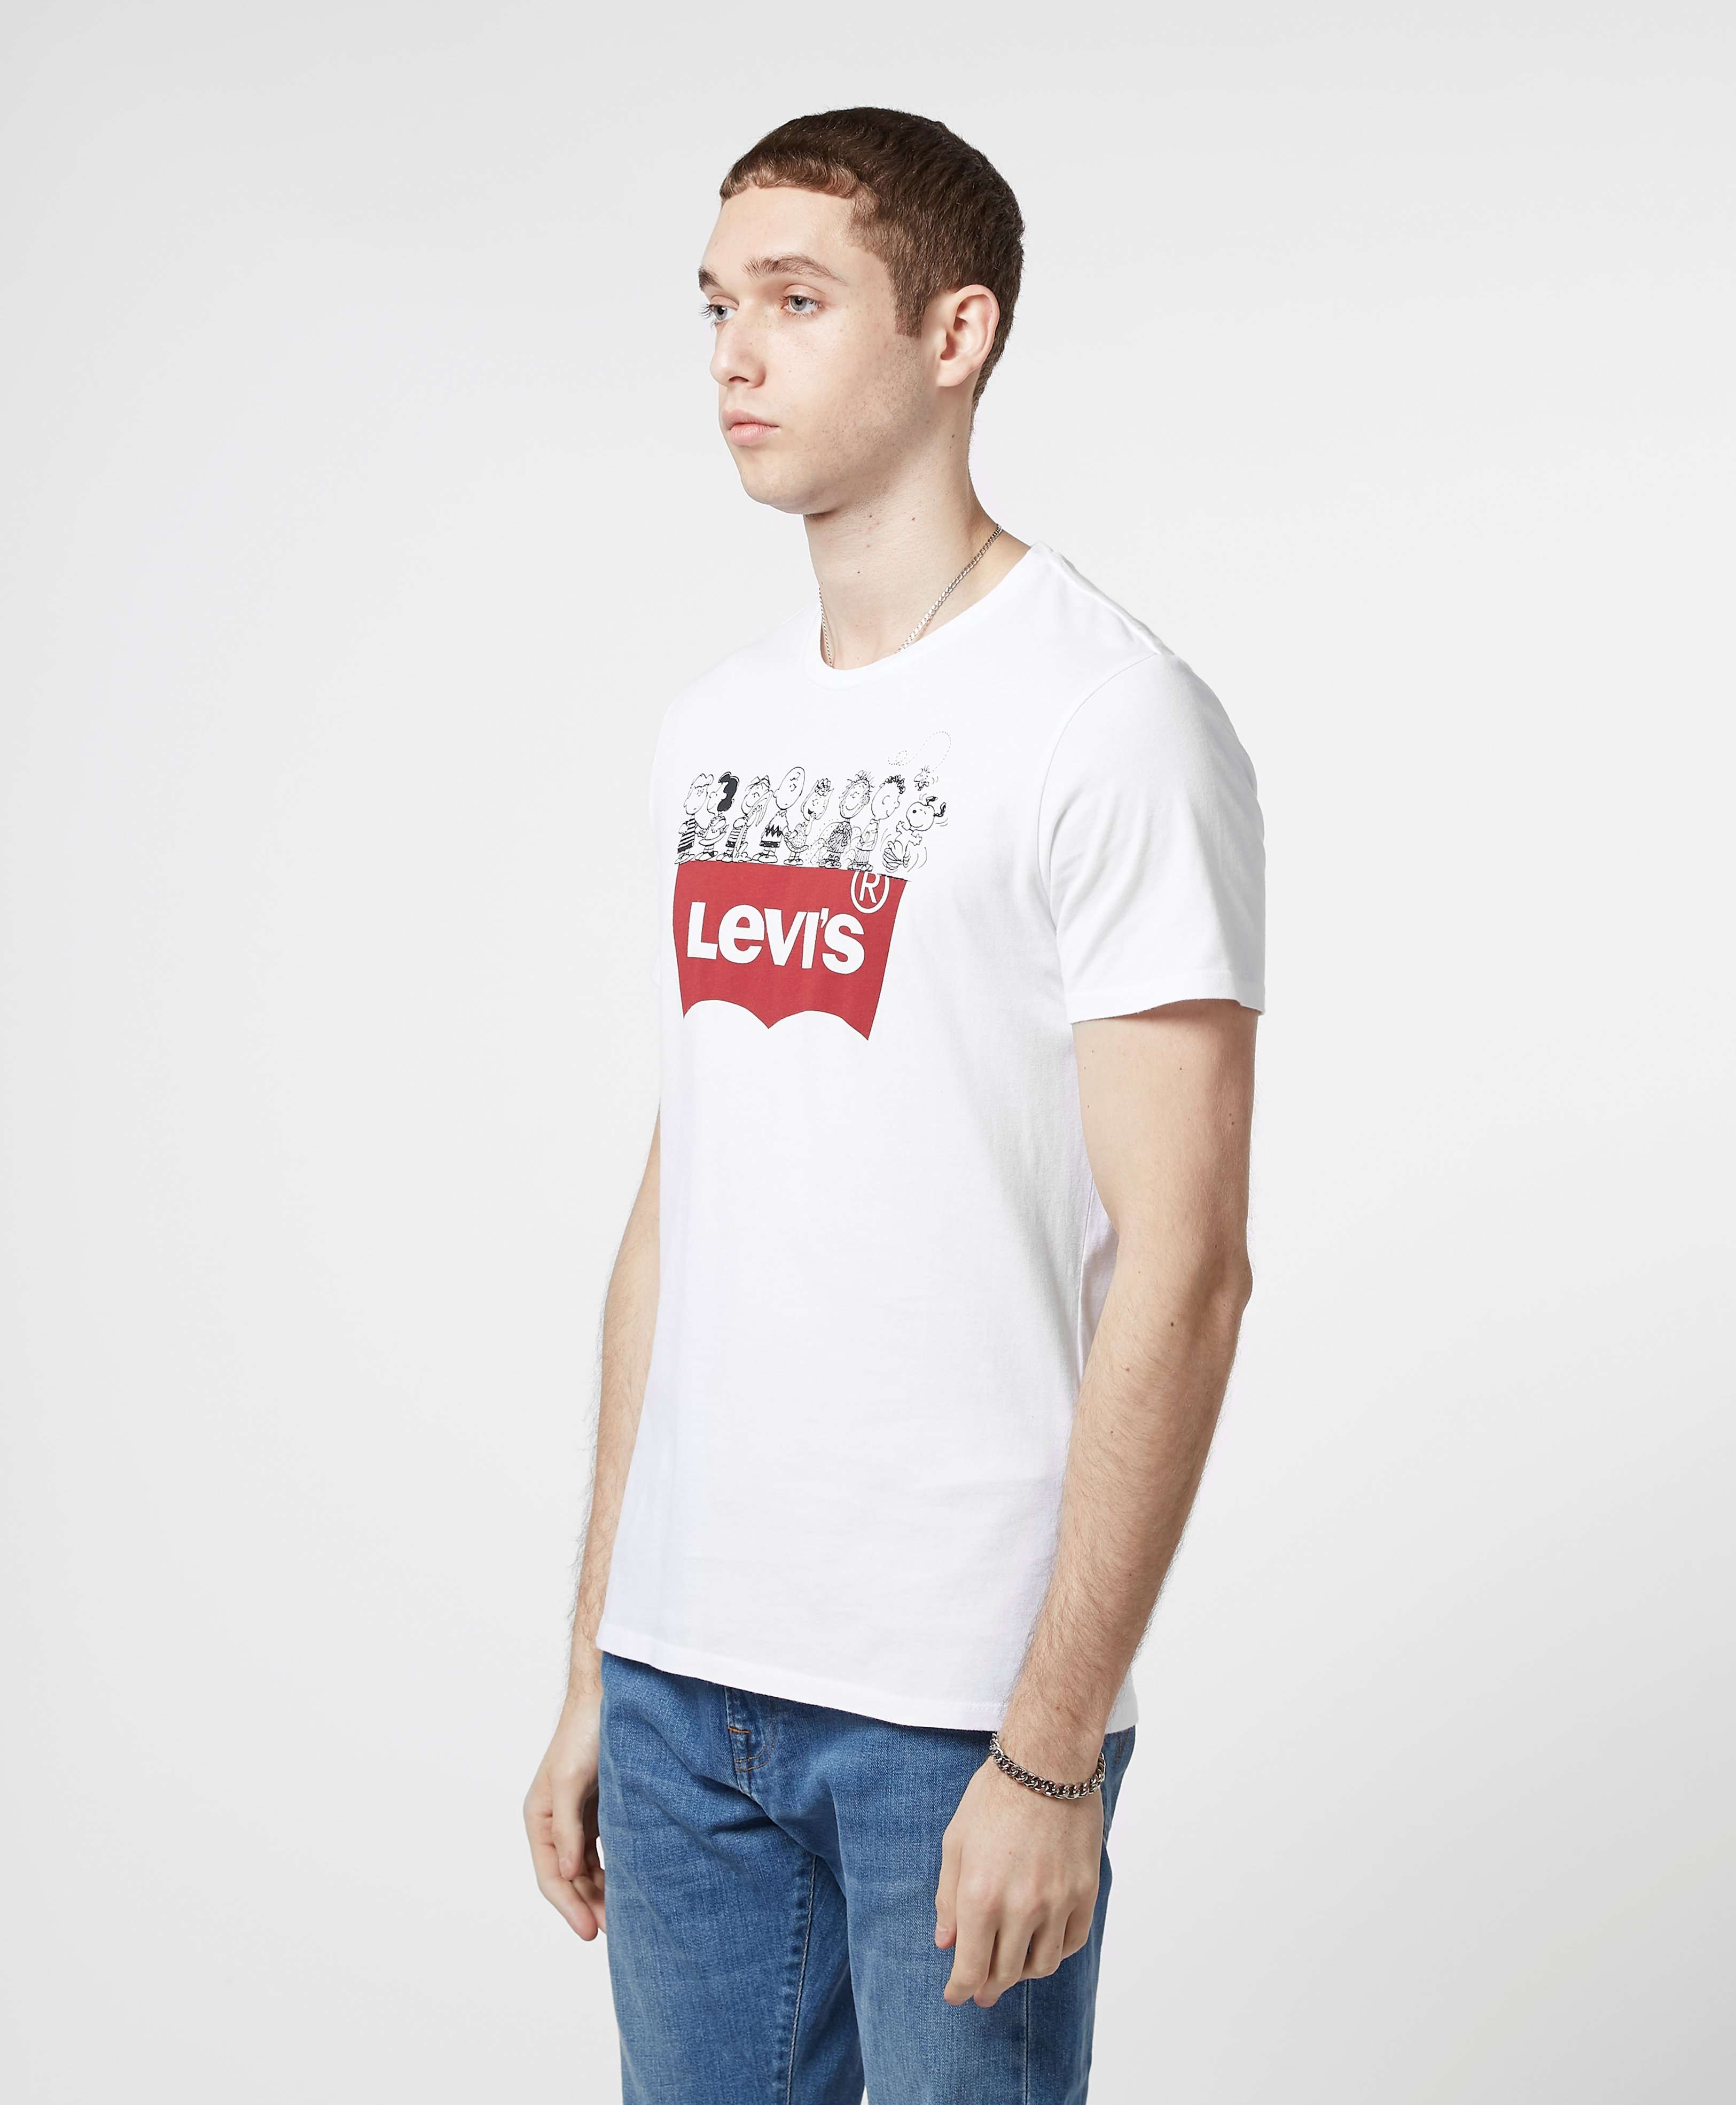 Levis x Peanuts Snoopy Gang Short Sleeve T-Shirt